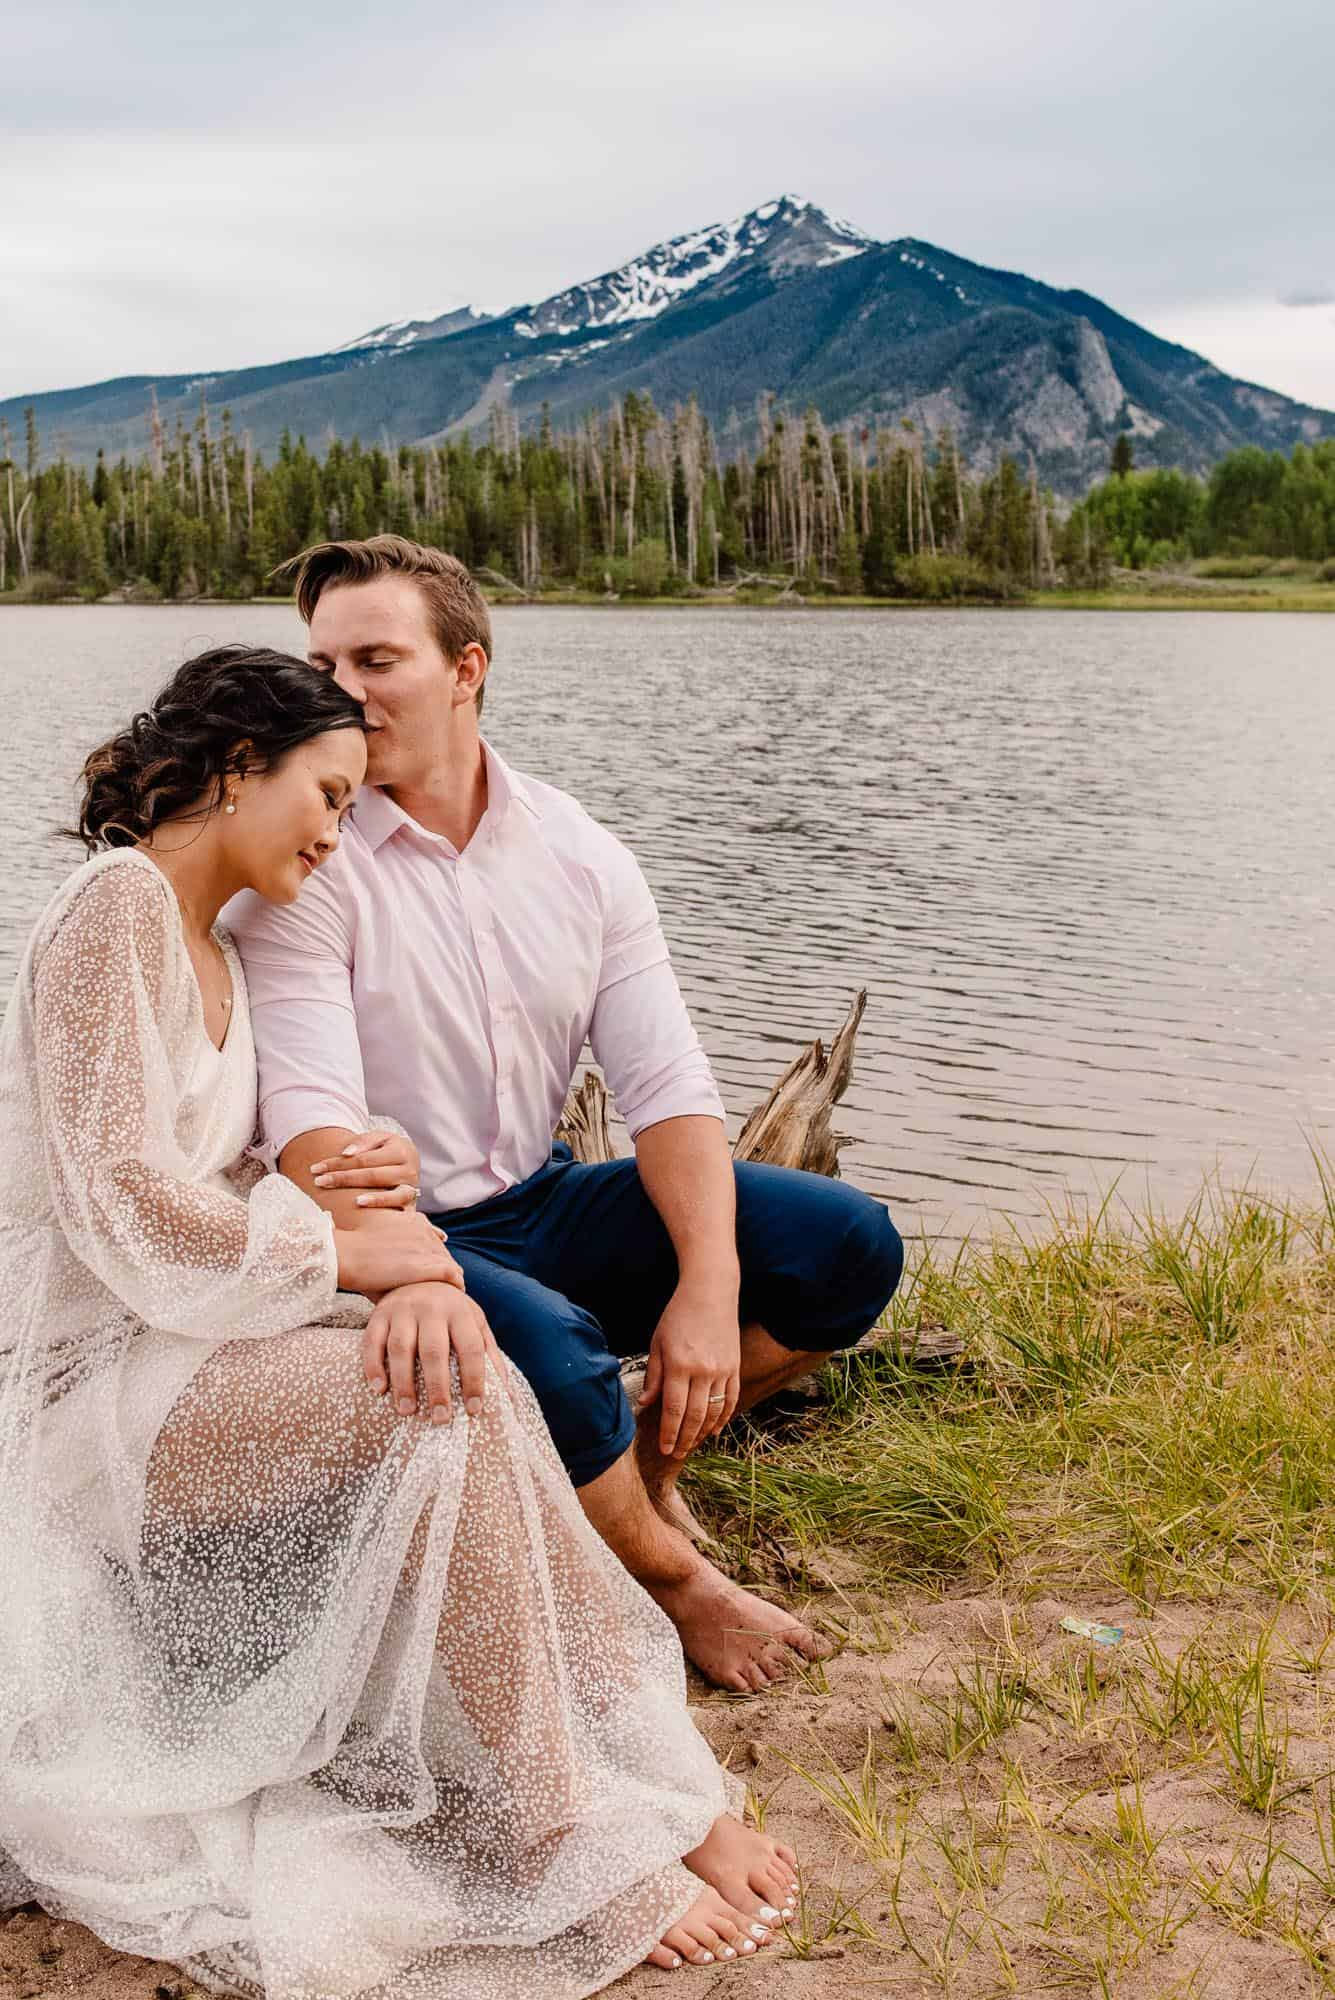 couple sitting on a log by the alpine lake, groom kissing bride on the forehead